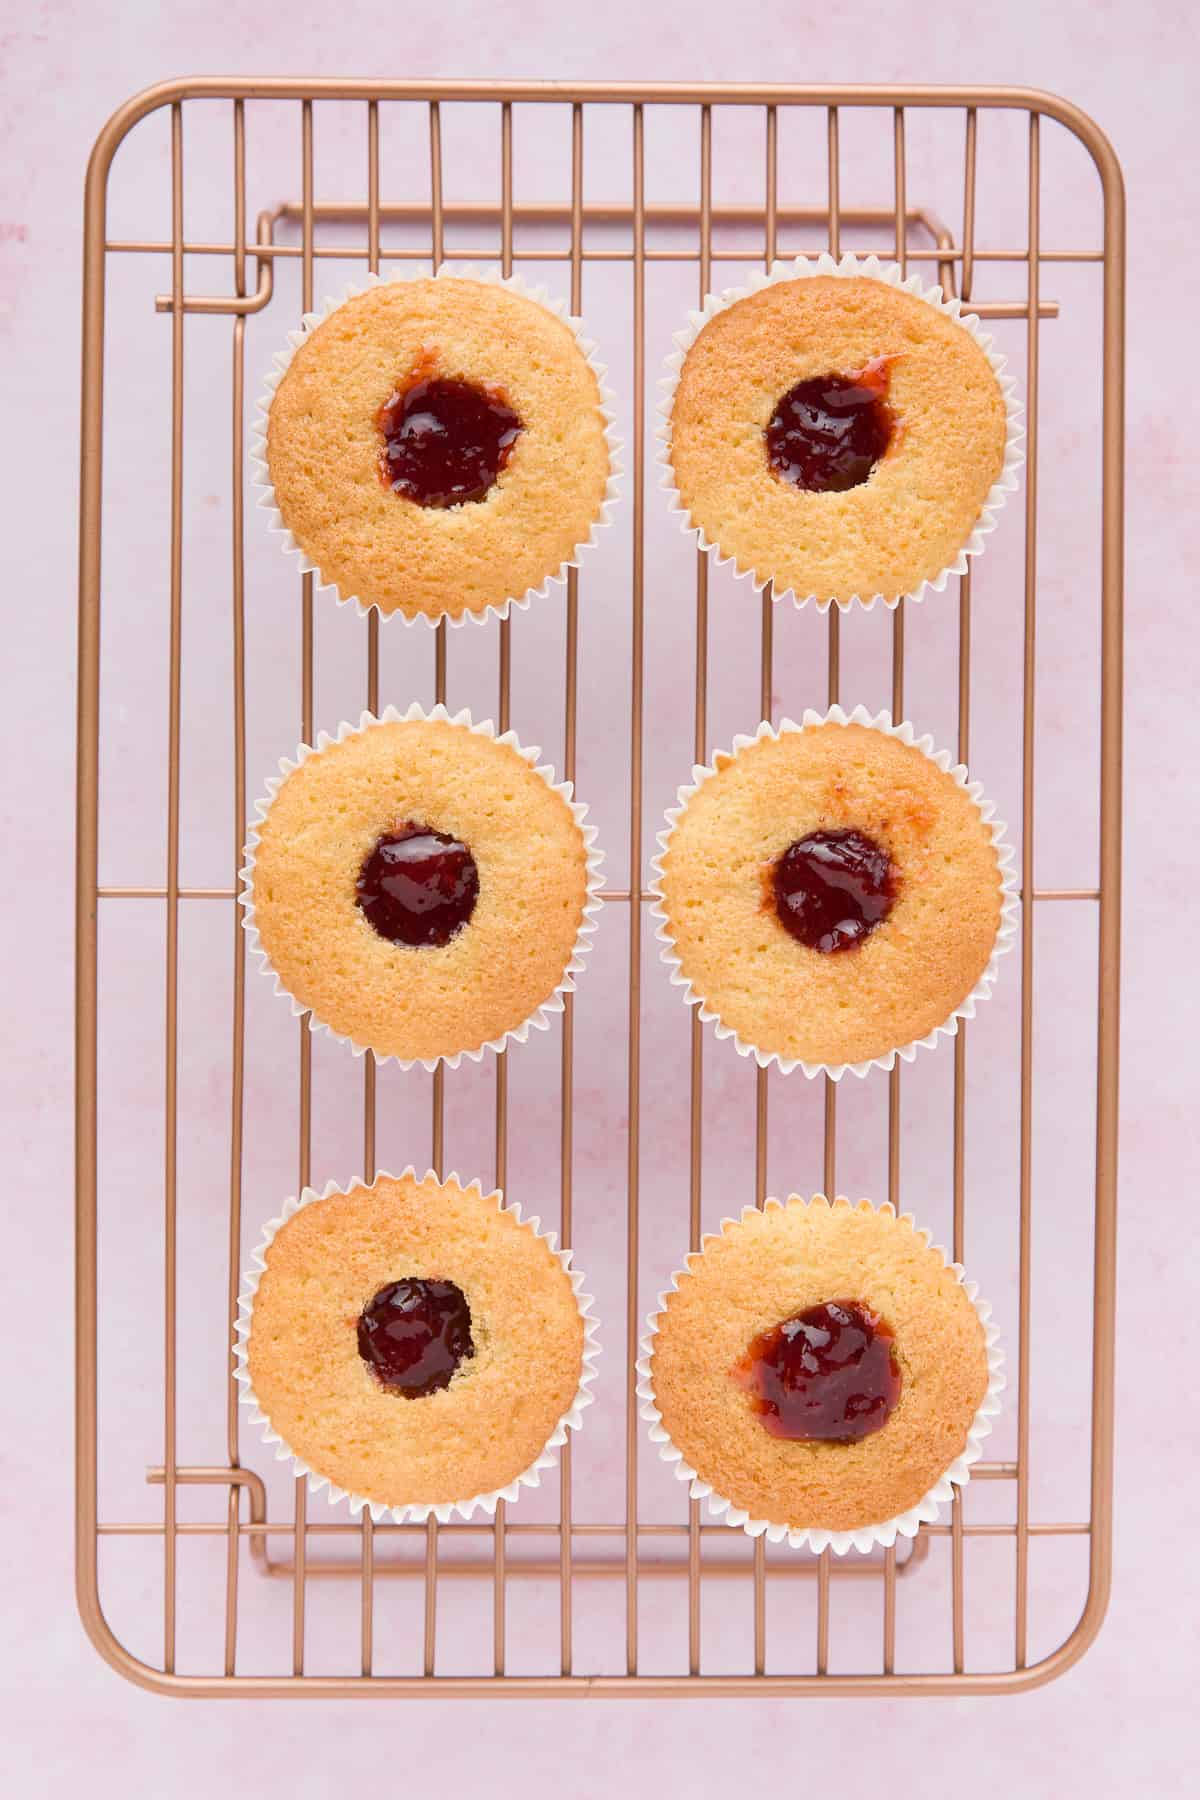 Step by step image showing strawberry jam that has been put into the centre of cupcakes.